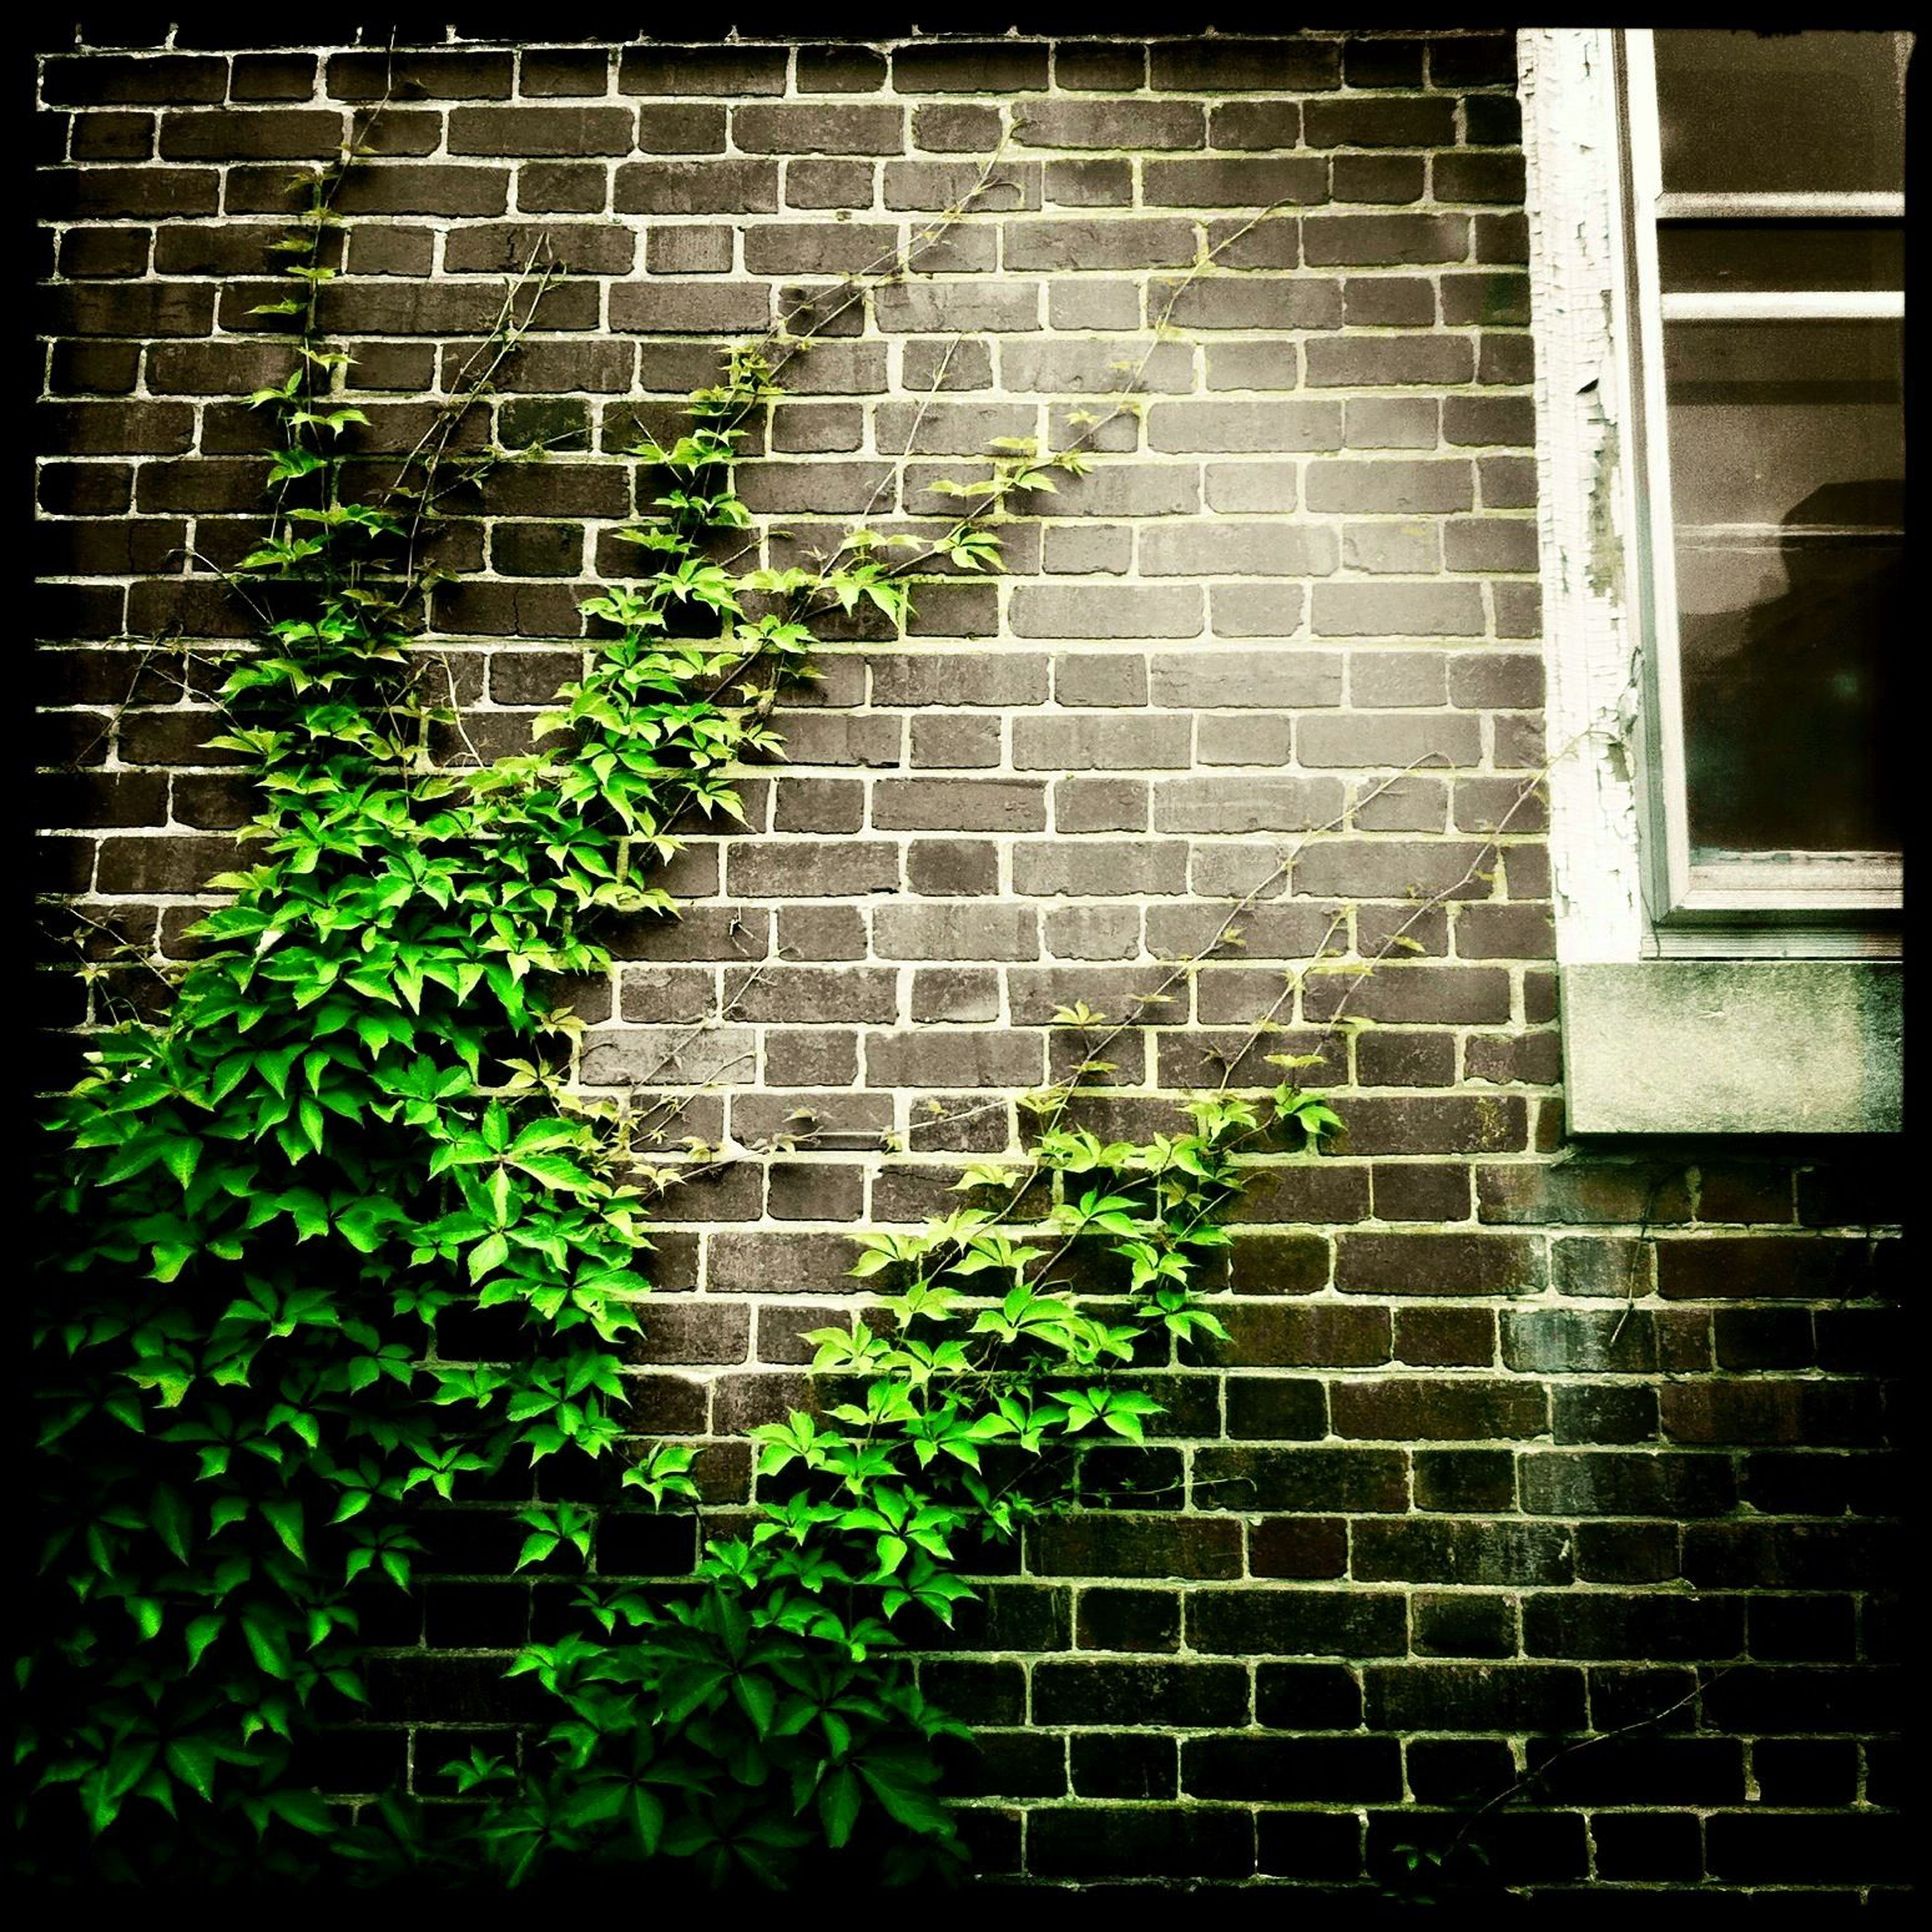 plant, built structure, architecture, building exterior, brick wall, green color, growth, wall - building feature, ivy, leaf, window, wall, house, growing, potted plant, day, no people, close-up, outdoors, auto post production filter